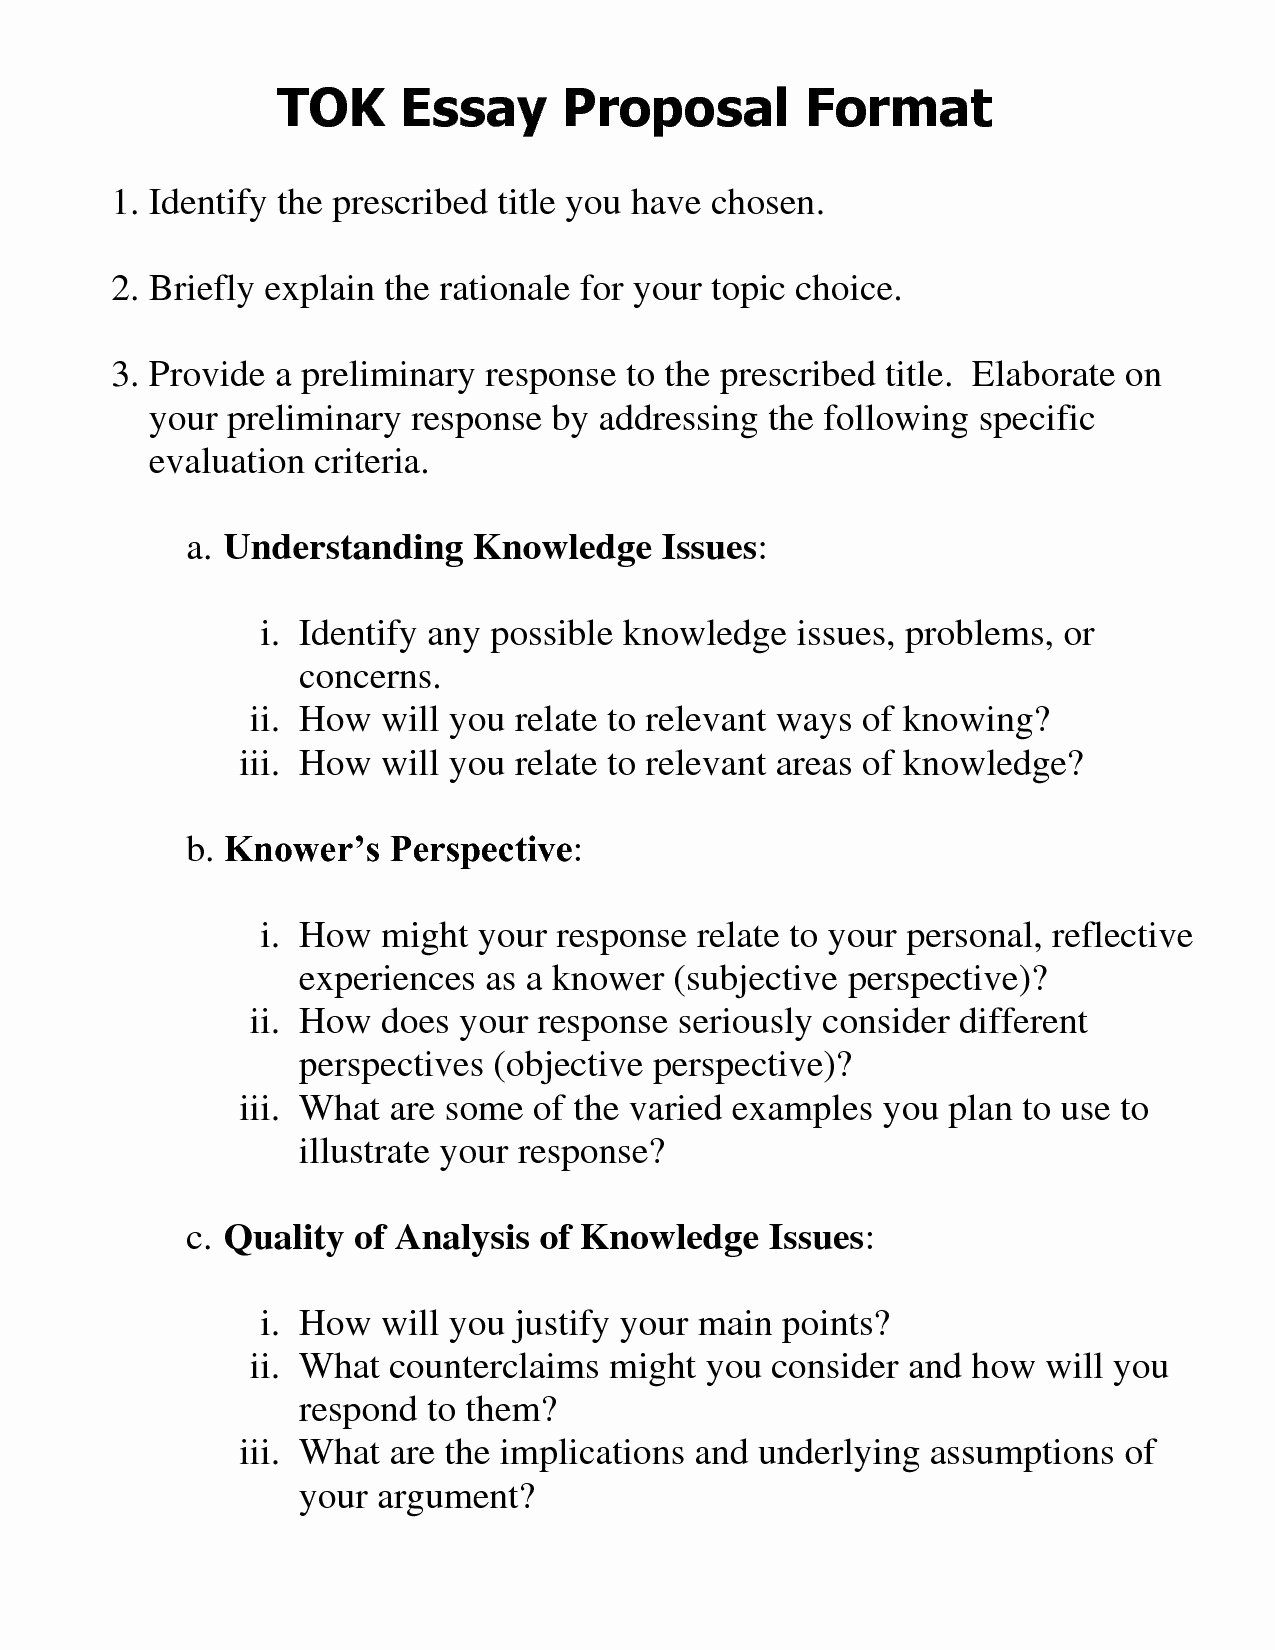 How To Write An Essay For High School  Cute Ideas For A Definition Essay Extended Definition Essay Ideas Term Paper  Essays Sample Business Essay On Business Communication also A Level English Essay  Cute Ideas For A Definition Essay English Essay Structure